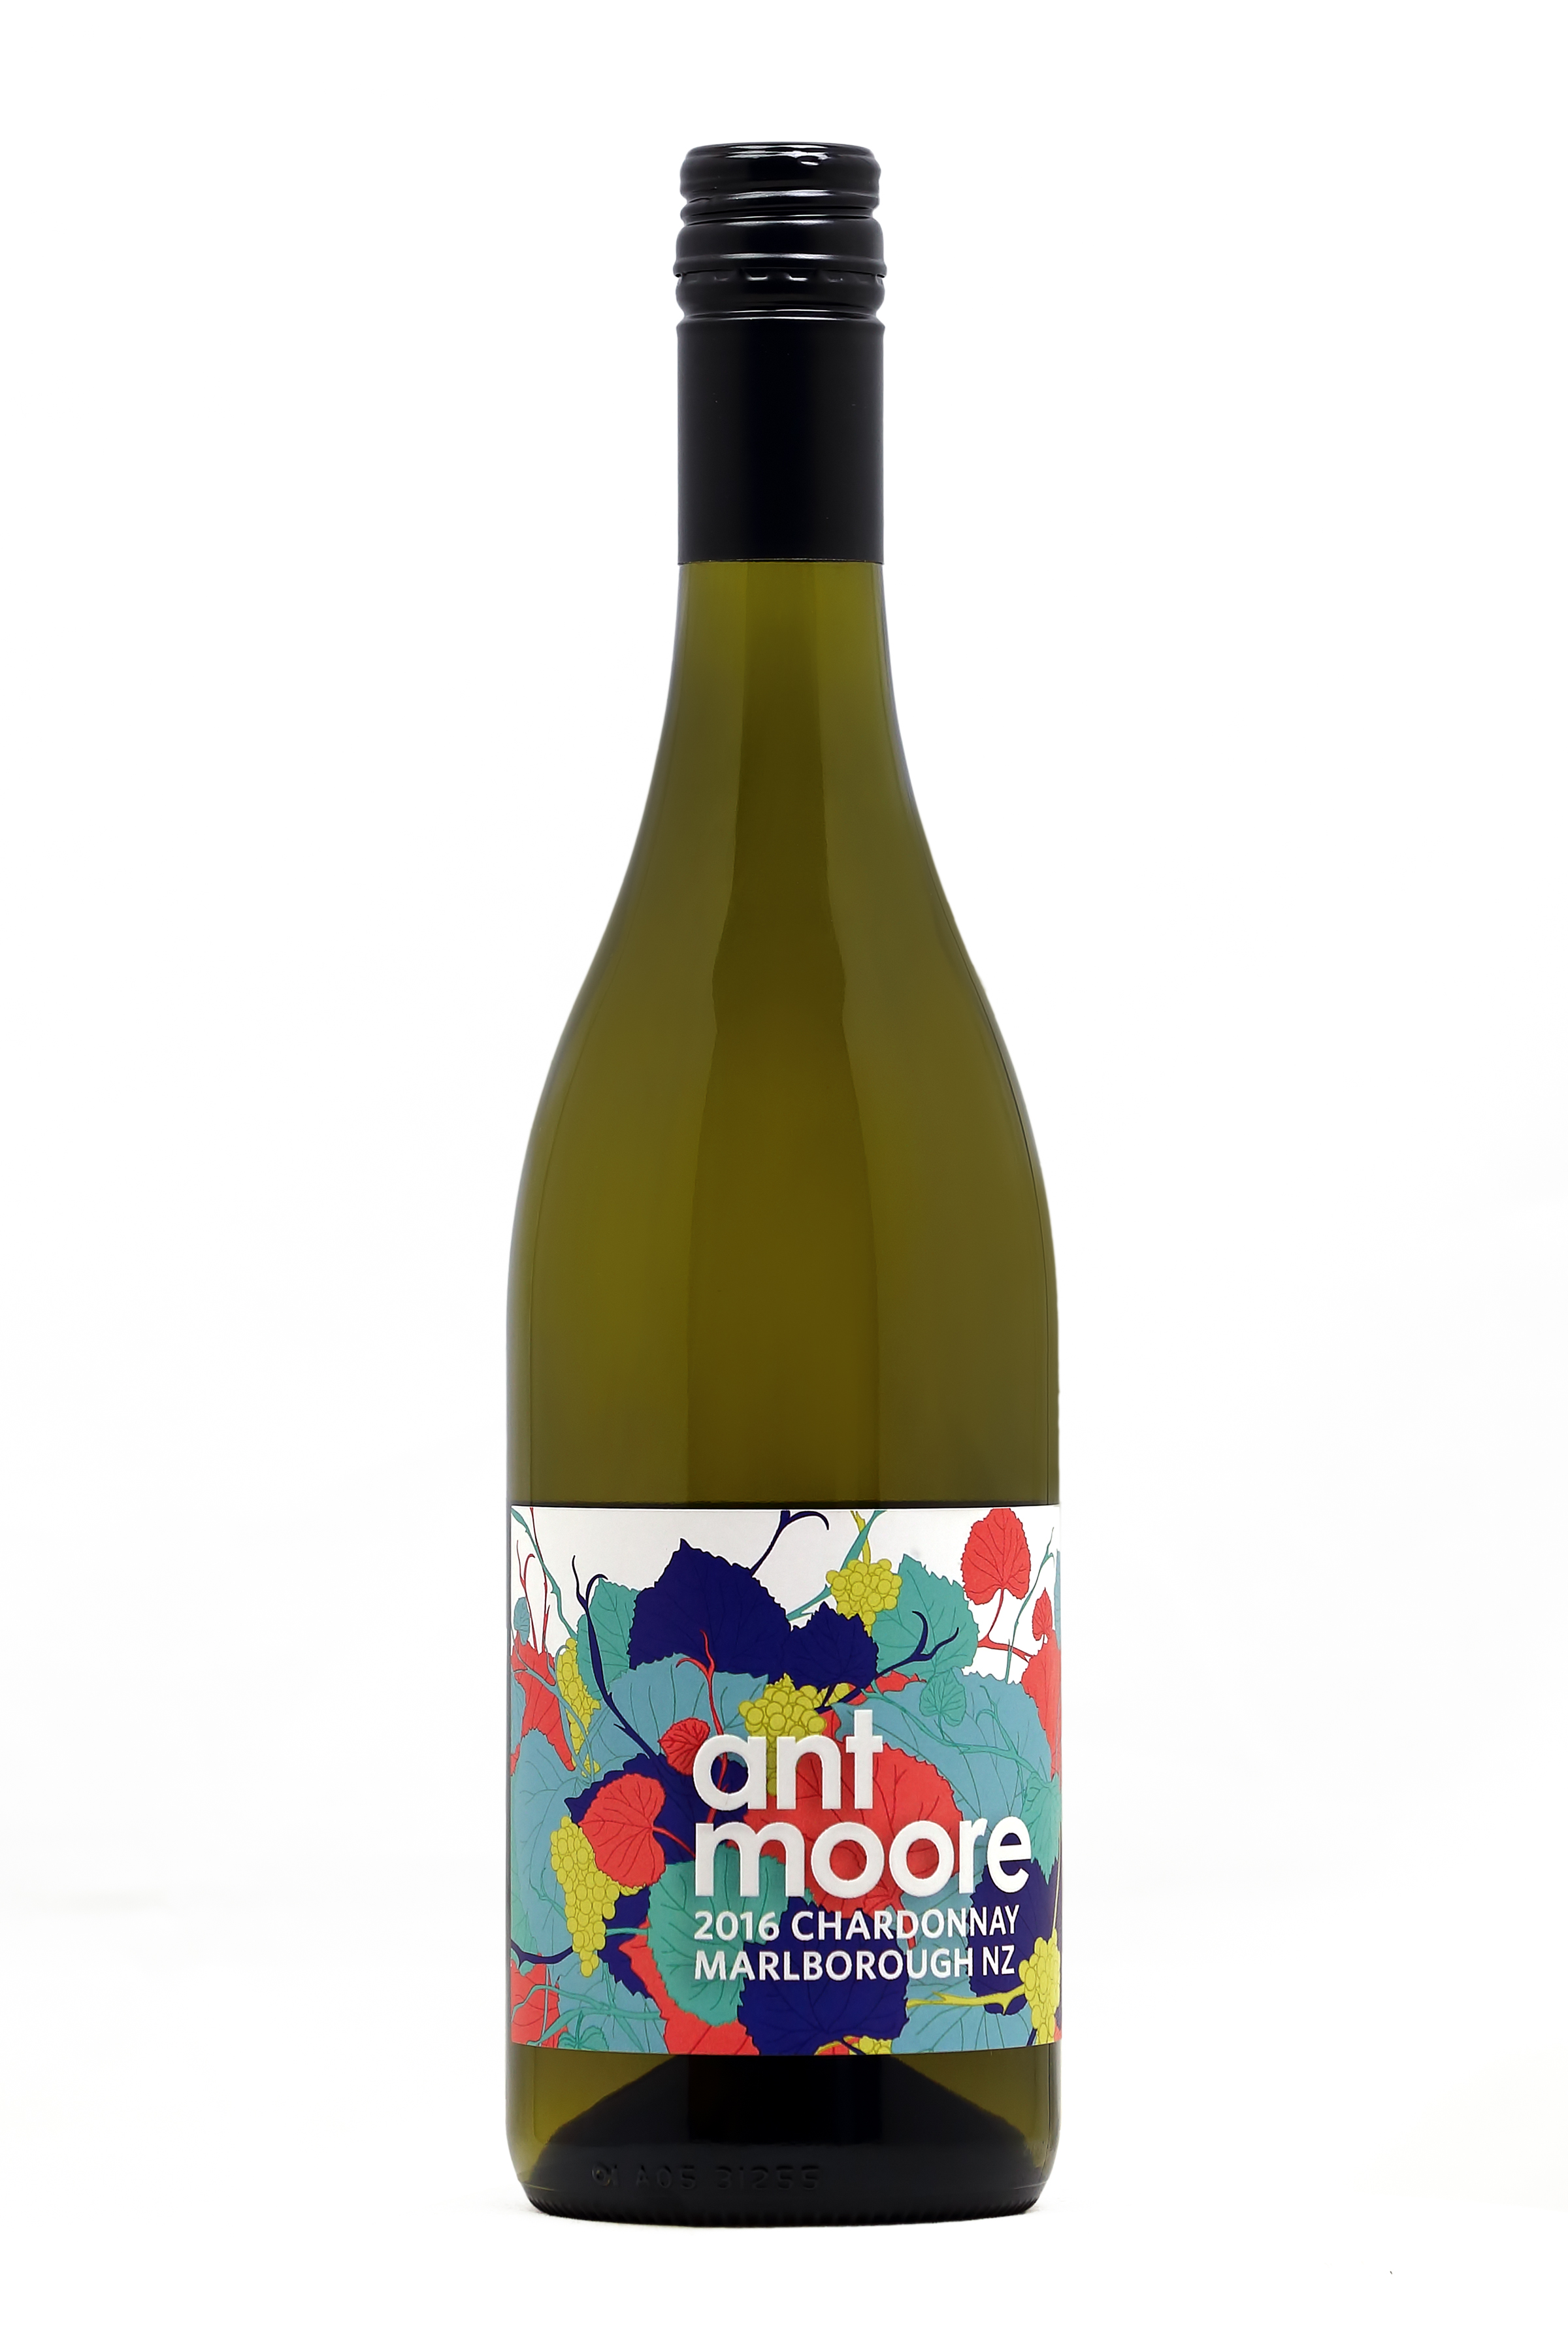 Ant Moore Signature Series Chardonnay 2016 - Aromas of dried Apricots, tobacco and citrus, the concentration on the nose is delightful. The subtle use of French oak has enabled to wine to feel warming and yet fruit dominated at the same time.